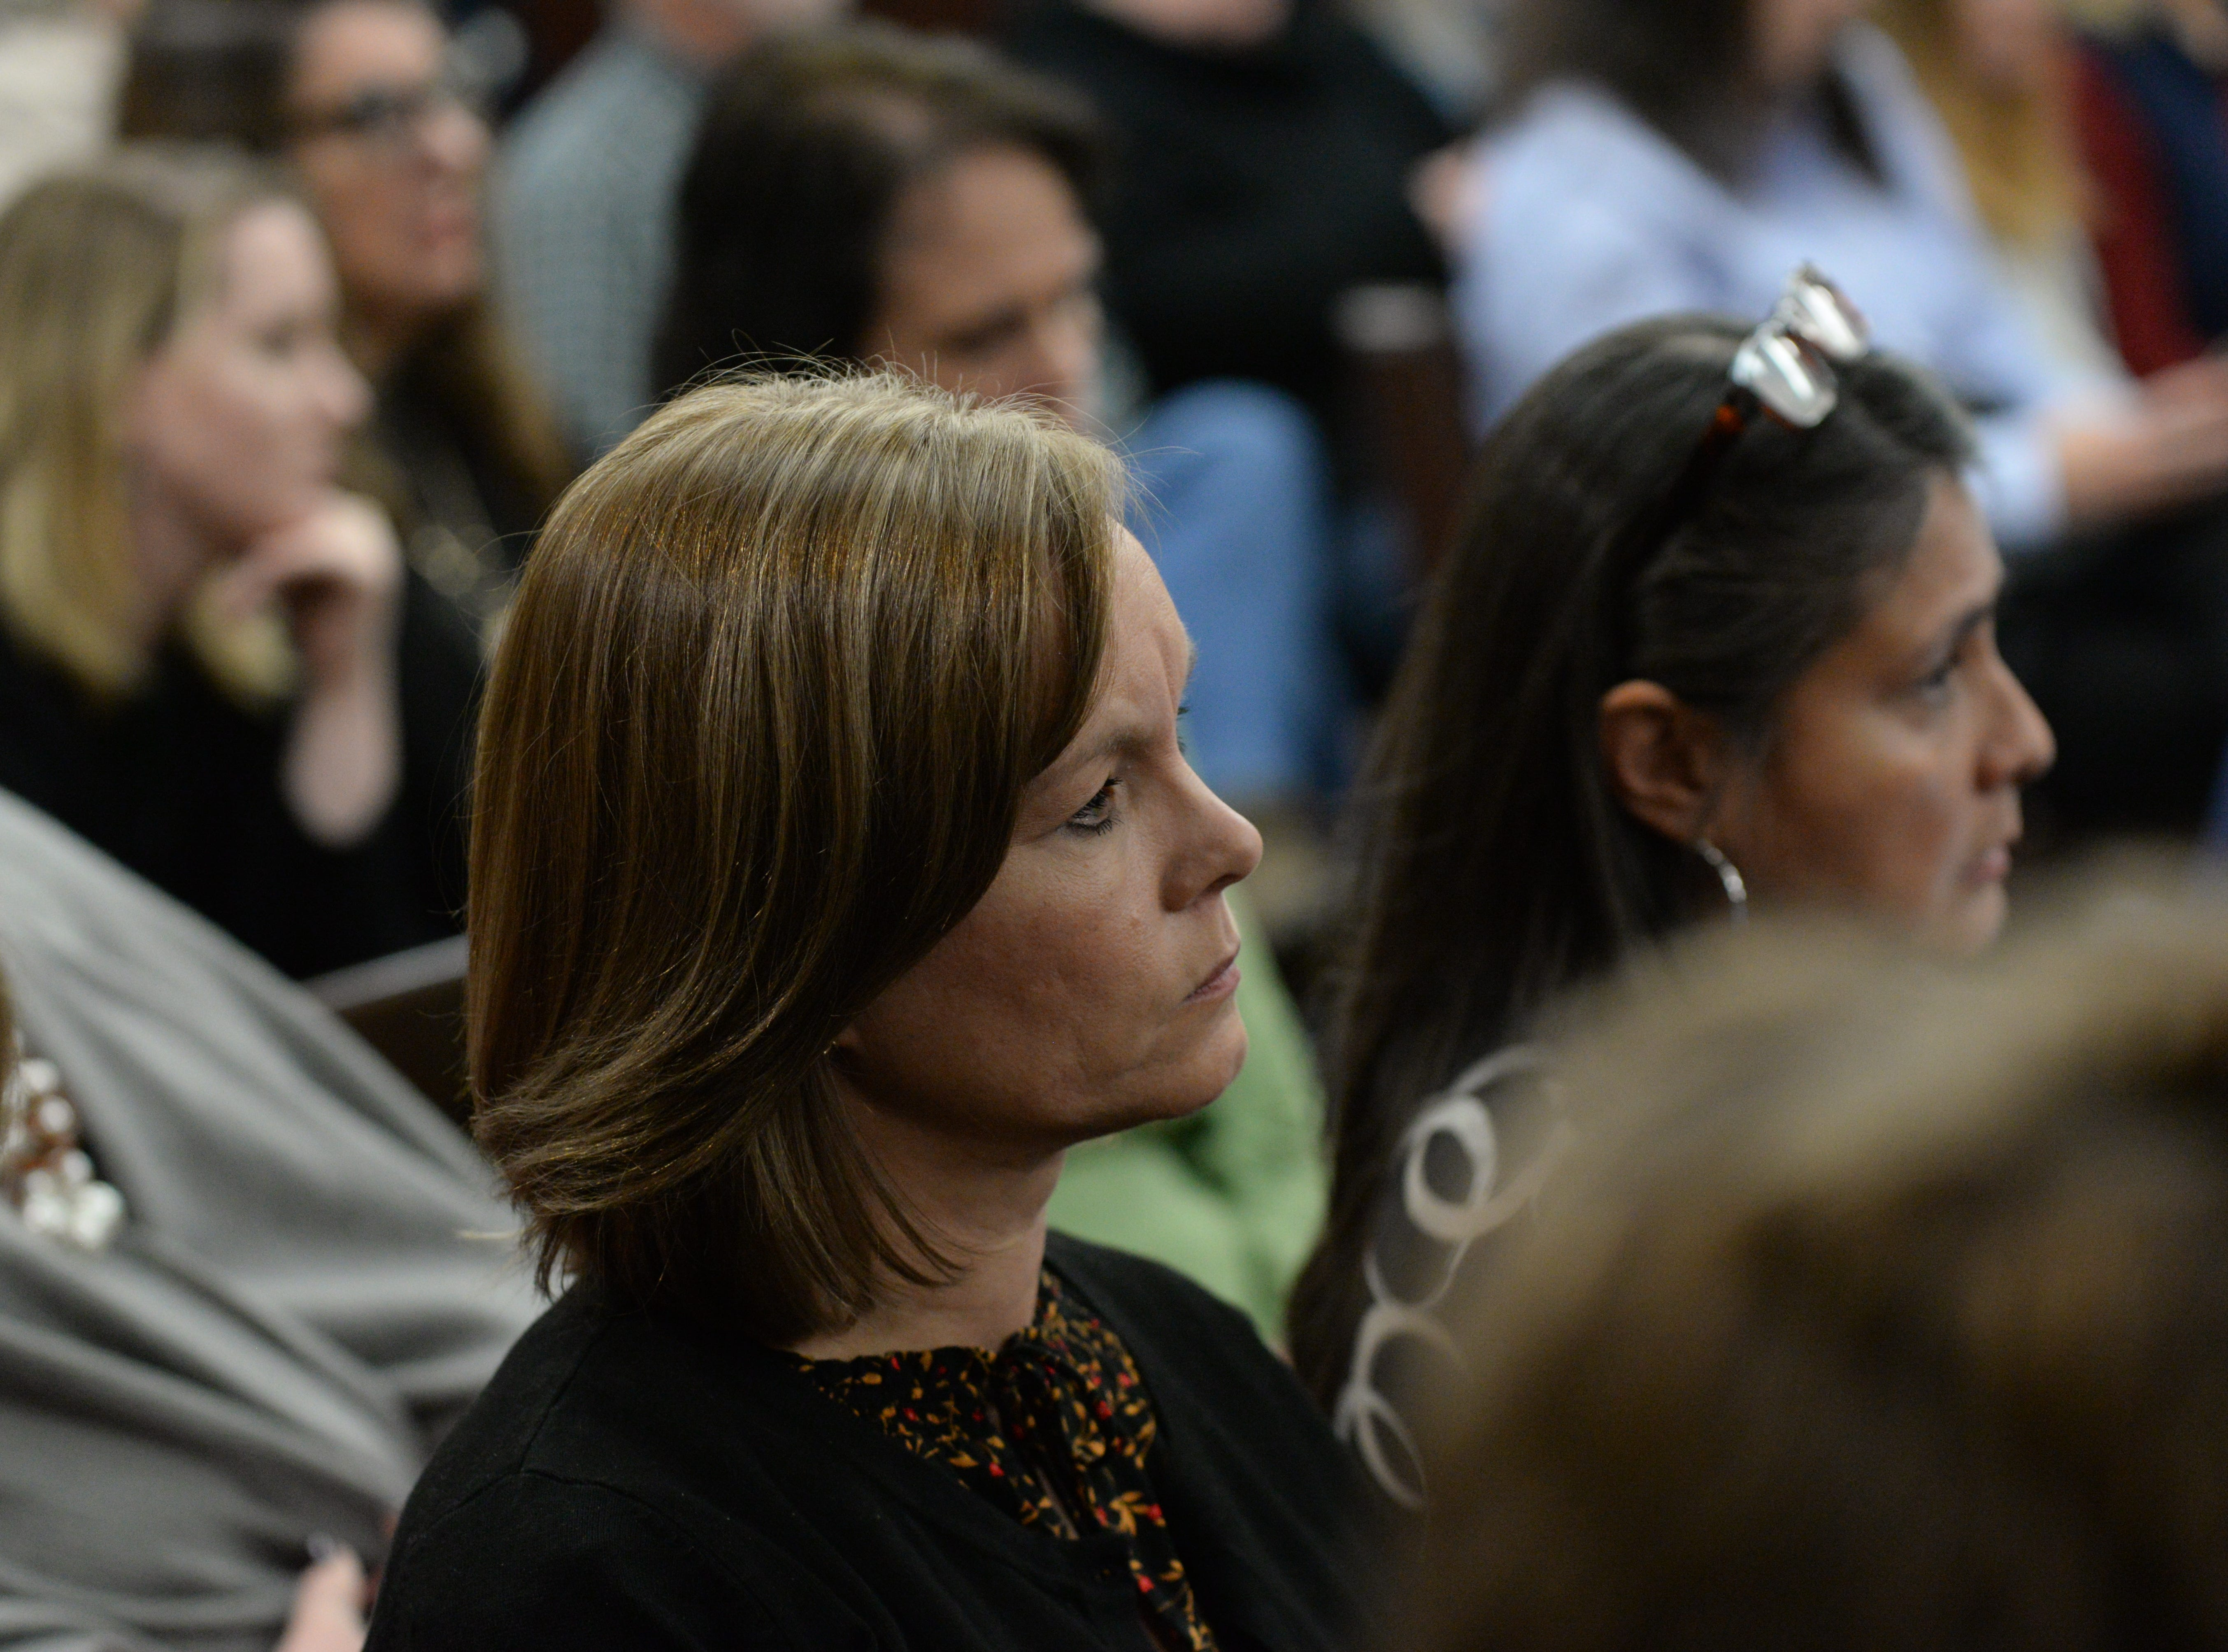 Kathy Thomas, ex-wife of Brian Winchester, listens as Denise Williams' attorney Ethan Way gives his closing arguments during the trial of Denise Williams for the murder of her husband Mike Williams at the Leon County Courthouse Friday, Dec. 14, 2018.